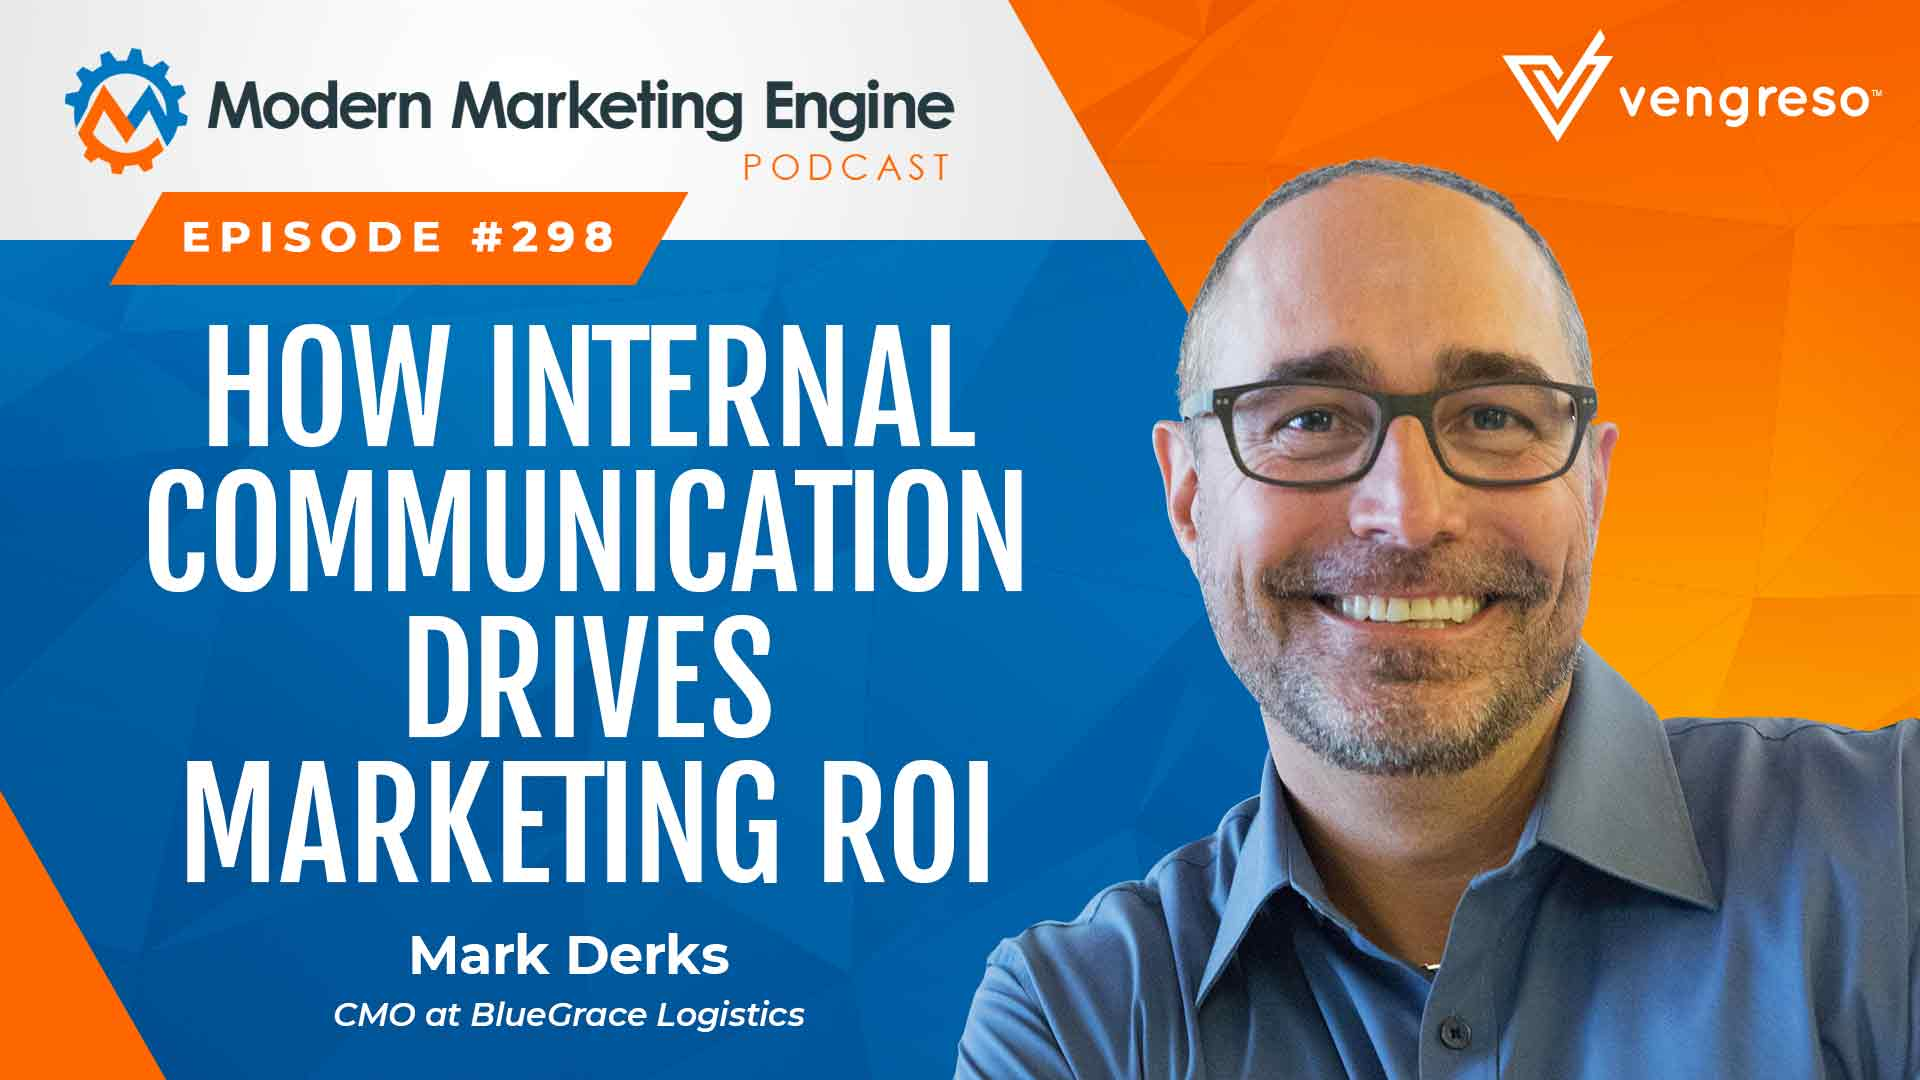 Internal Communication Marketing How Drives Marketing ROI